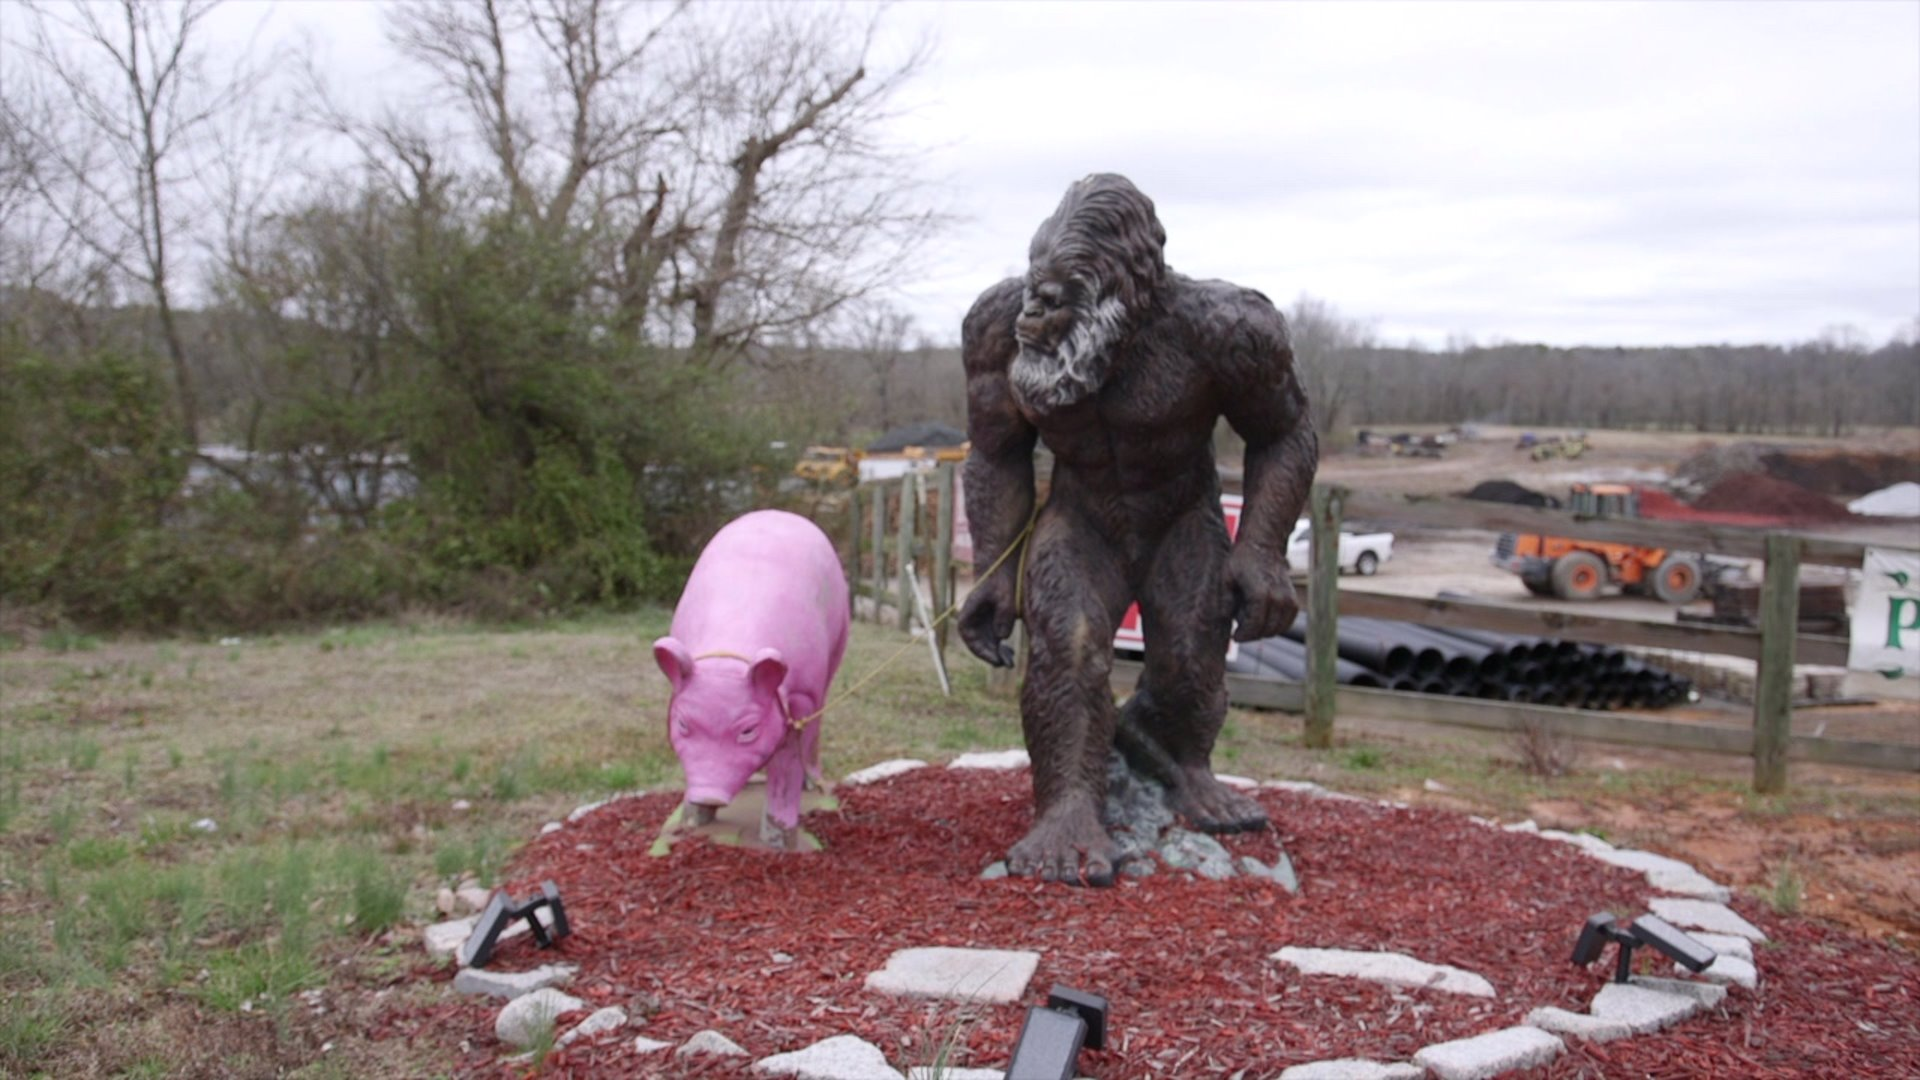 Germanton store uses giant bigfoot statue to attract customers